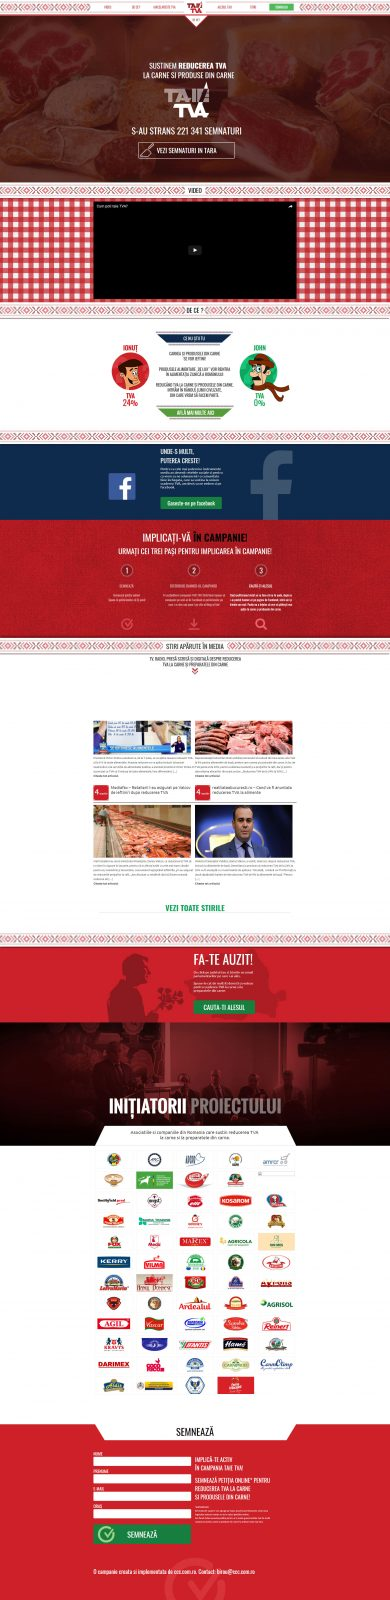 creare site web, web design TaieTVA.ro campanie nationala